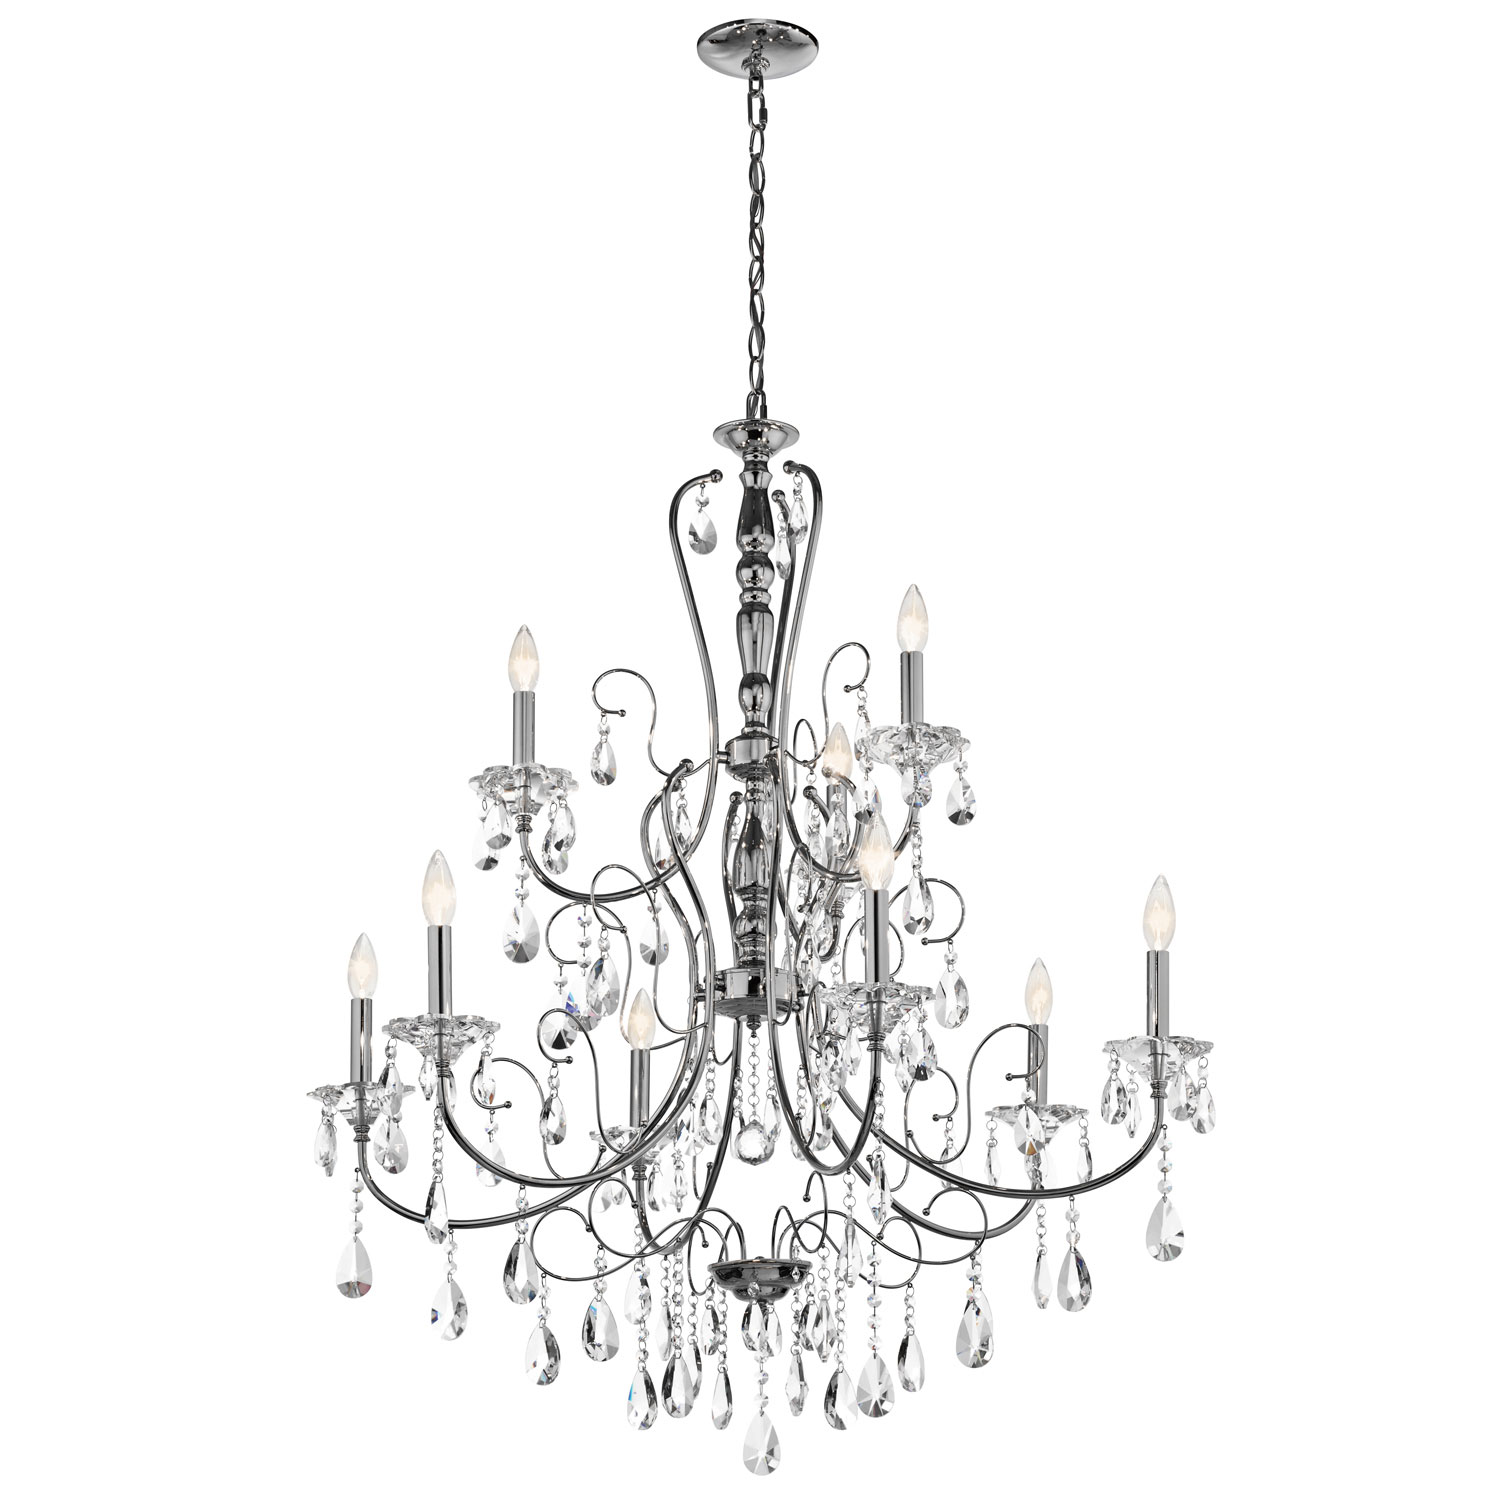 1500x1500 Drawings Of Chandeliers